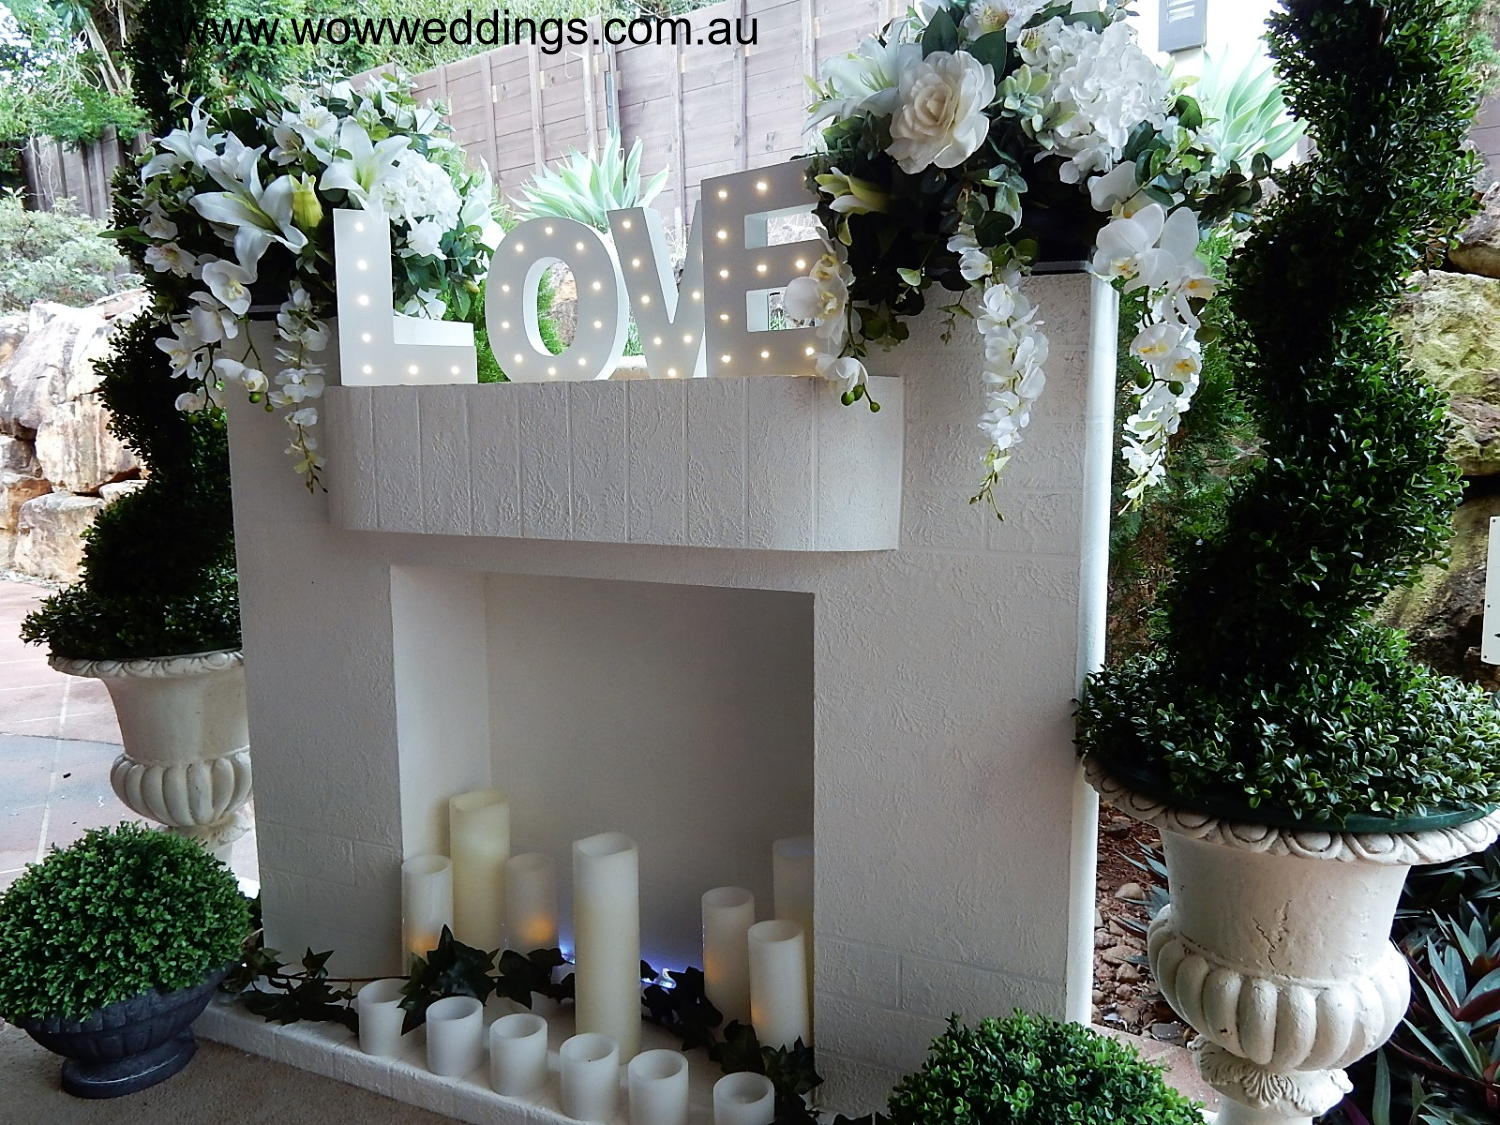 Fireplace Mantel wedding hire